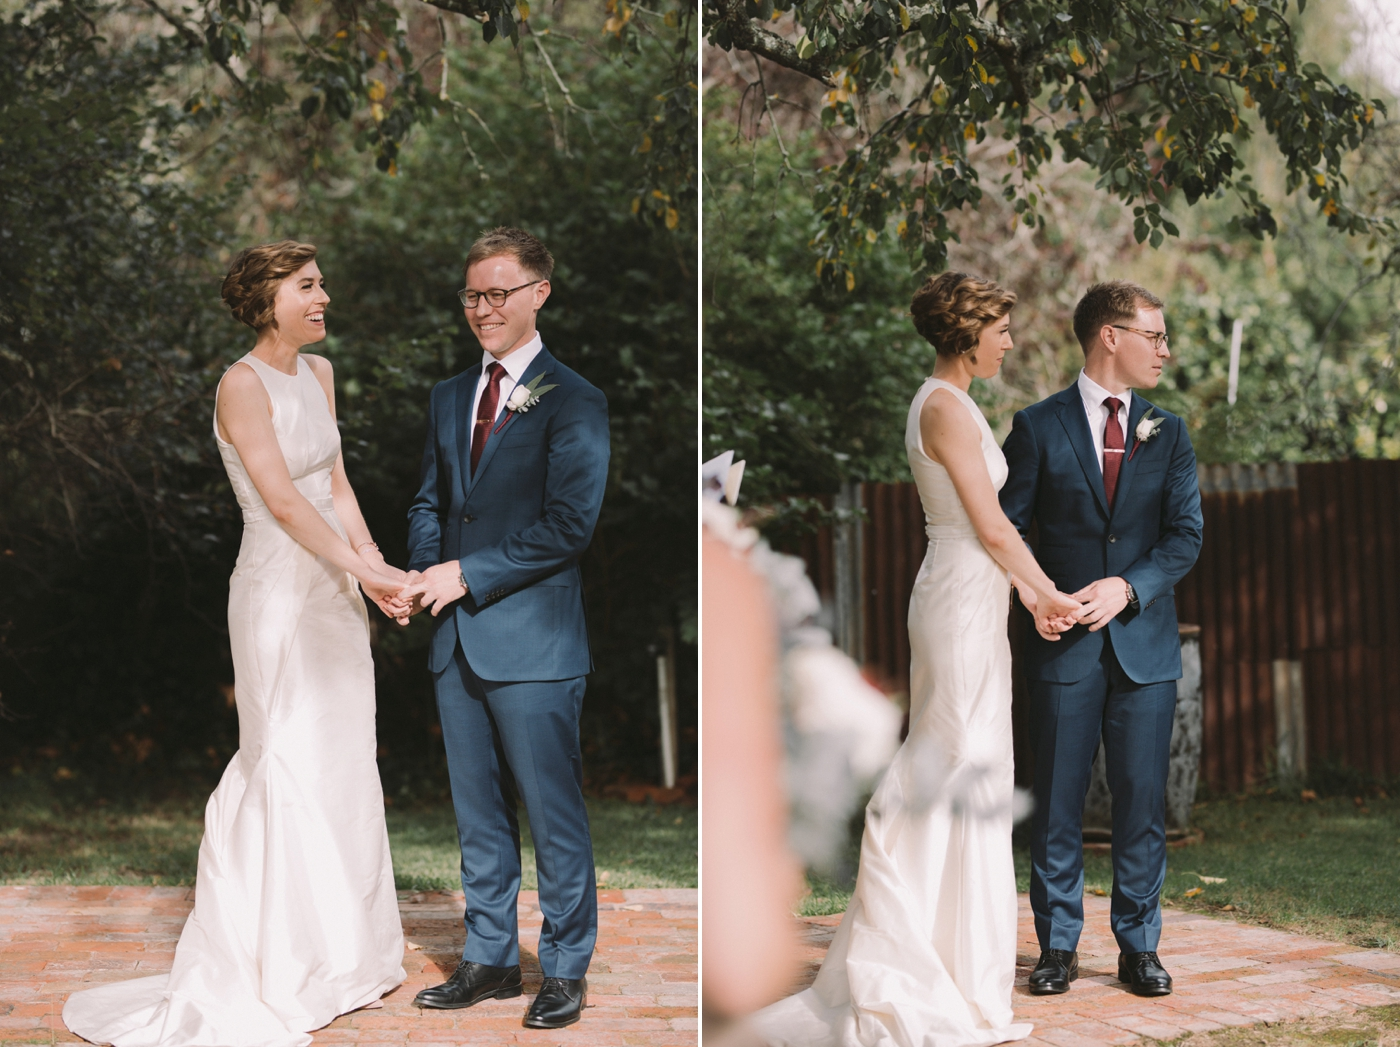 Liam & Bec - White House Adelaide Hills Wedding - Natural Wedding Photography in Adelaide - www.katherineschultzphotography.com 37